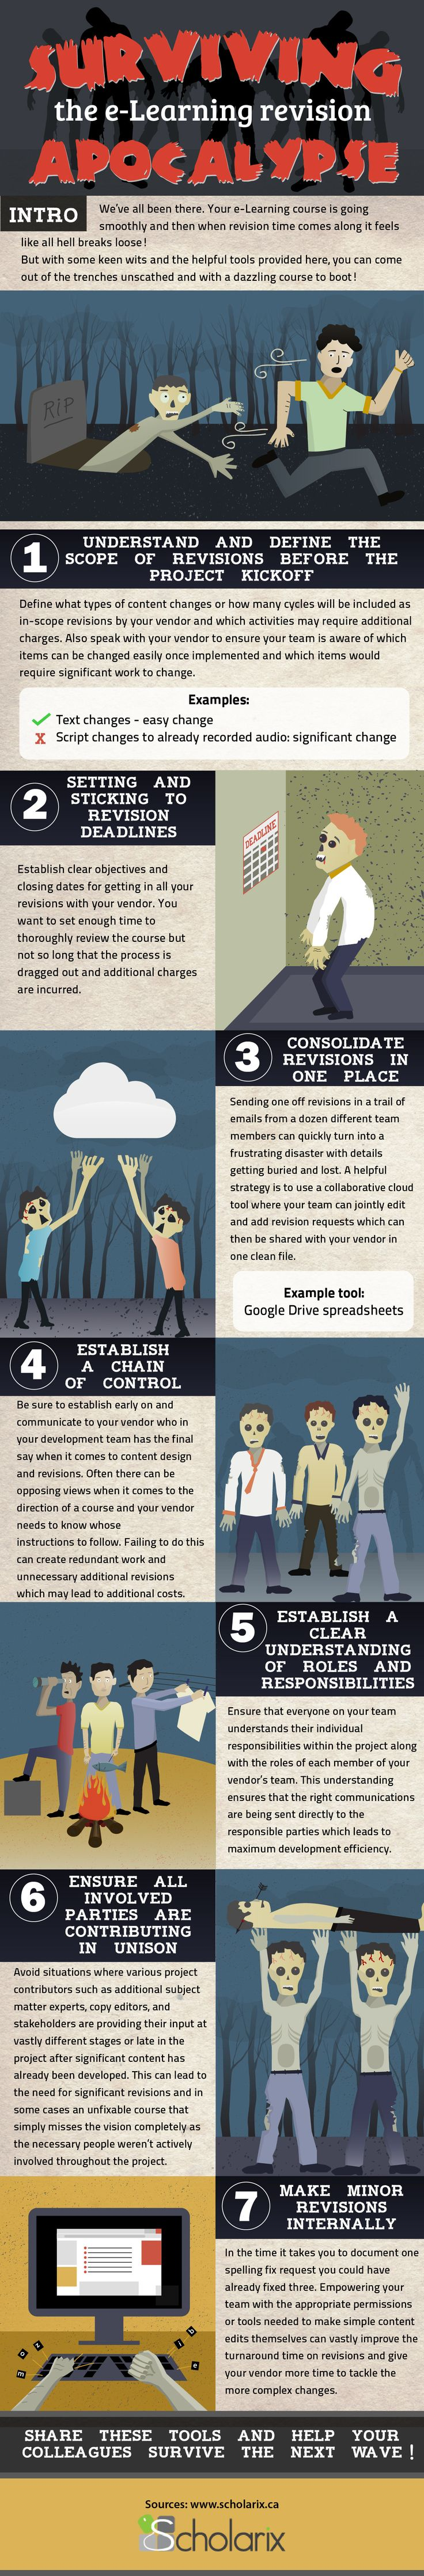 Surviving the e-learning Apocalypse   #infographic #OnlineCourse #Education